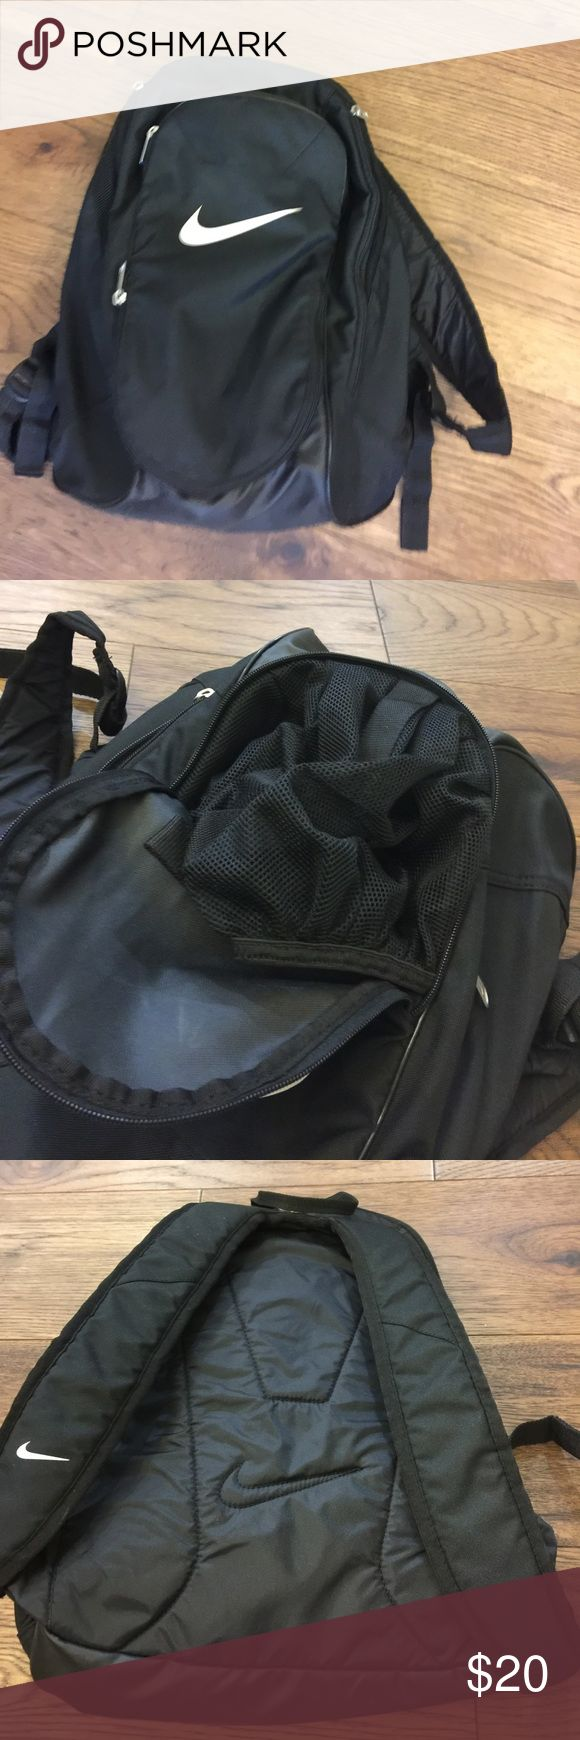 Nike Soccer Backpack, black. EUC. Like new Nike soccer backpack. Pocket in the front for the ball, individual shoe pockets in each side, and a big main compartment for clothes. Nike Bags Backpacks